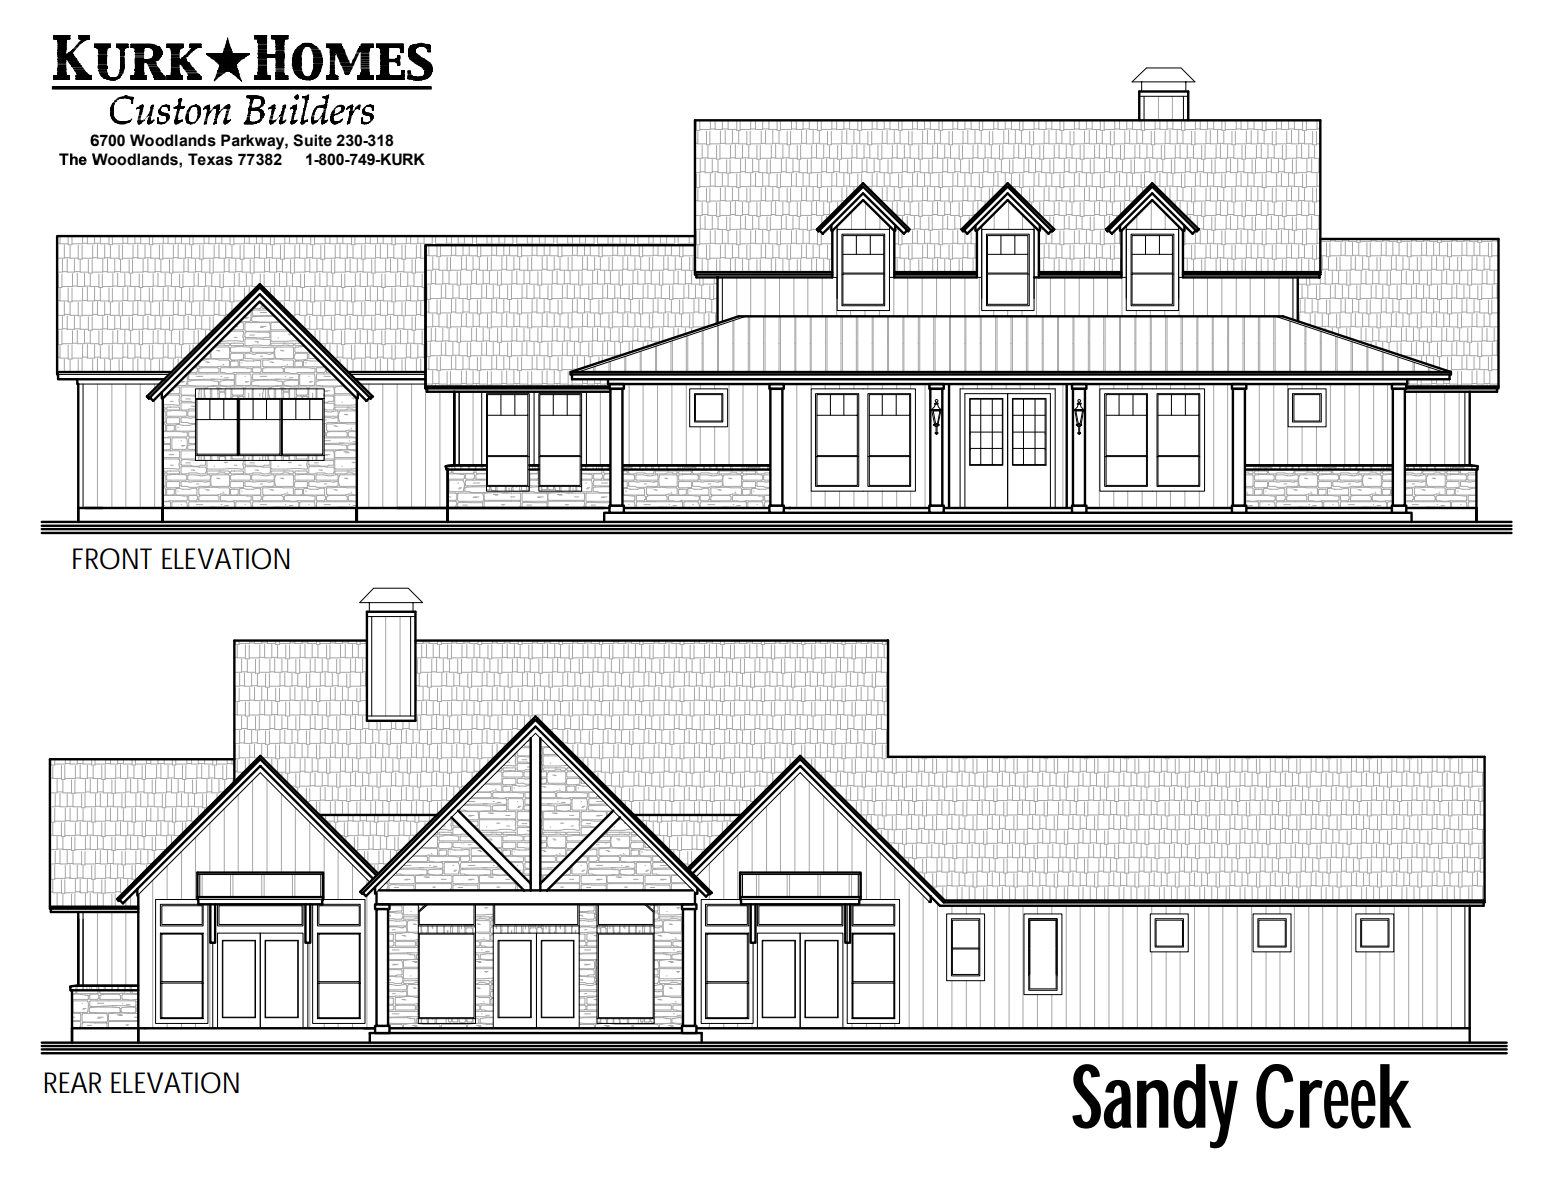 The Sandy Creek - Front Elevation